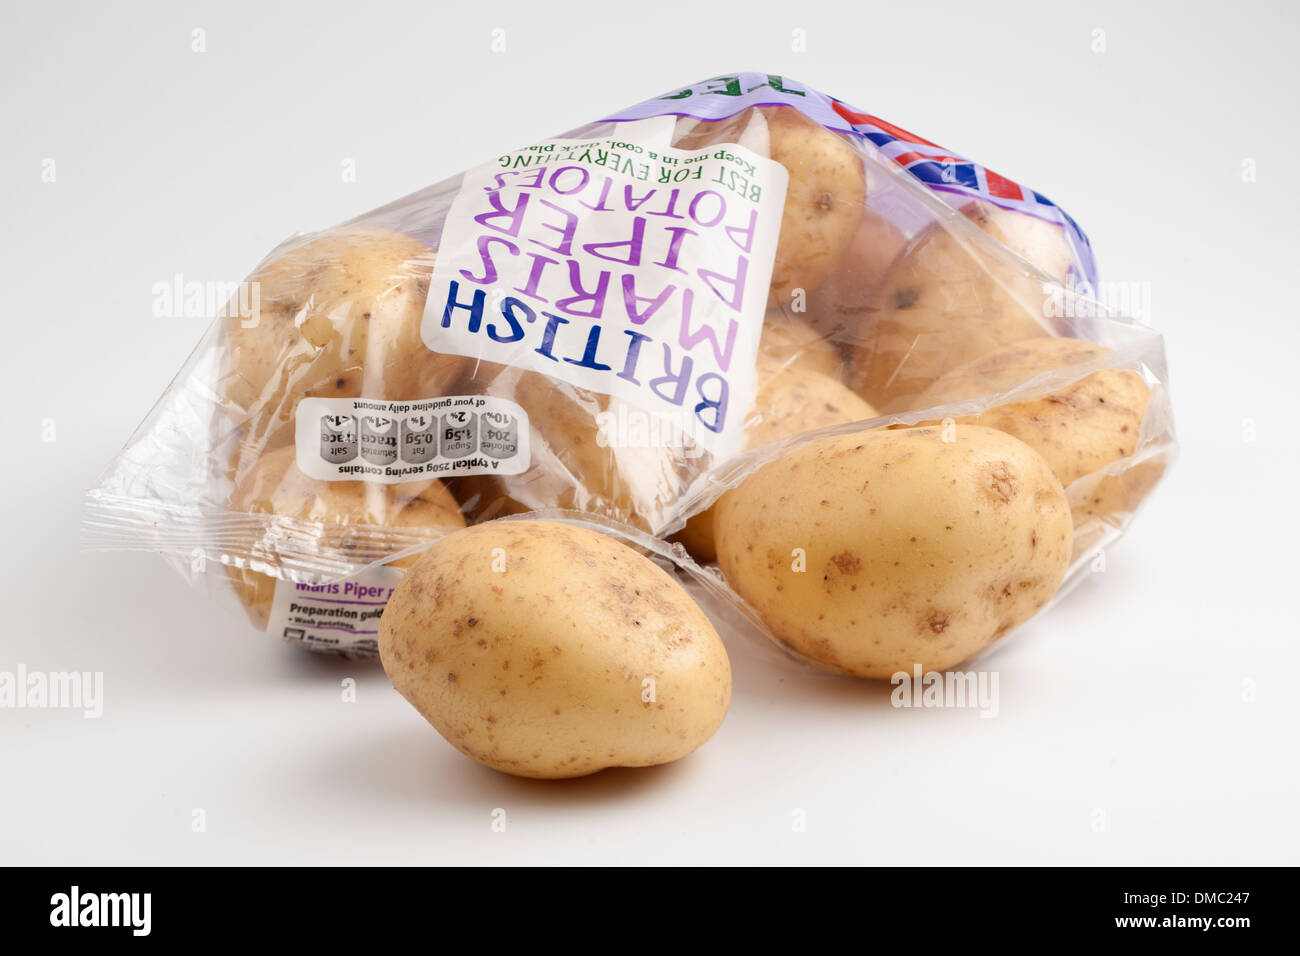 Bag of British Maris Piper potatoes - Stock Image